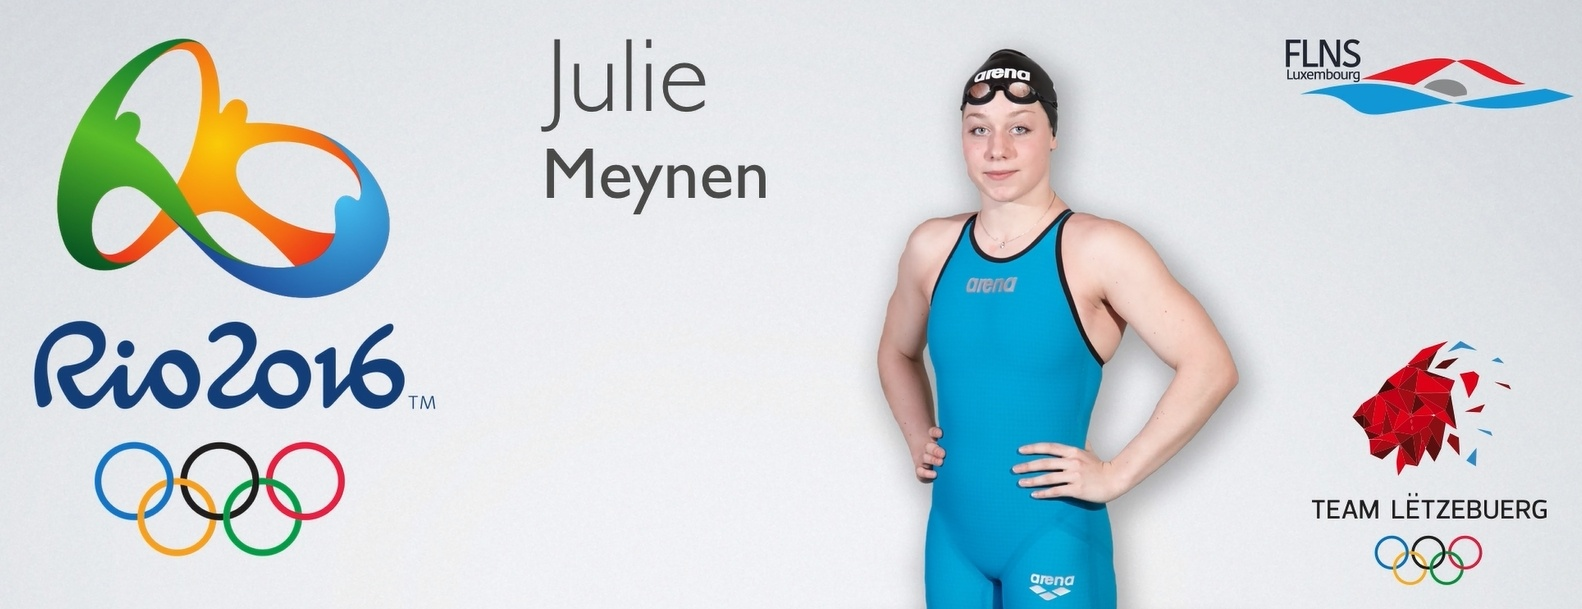 Luxembourg's Julie Meynen received her invitation to Rio